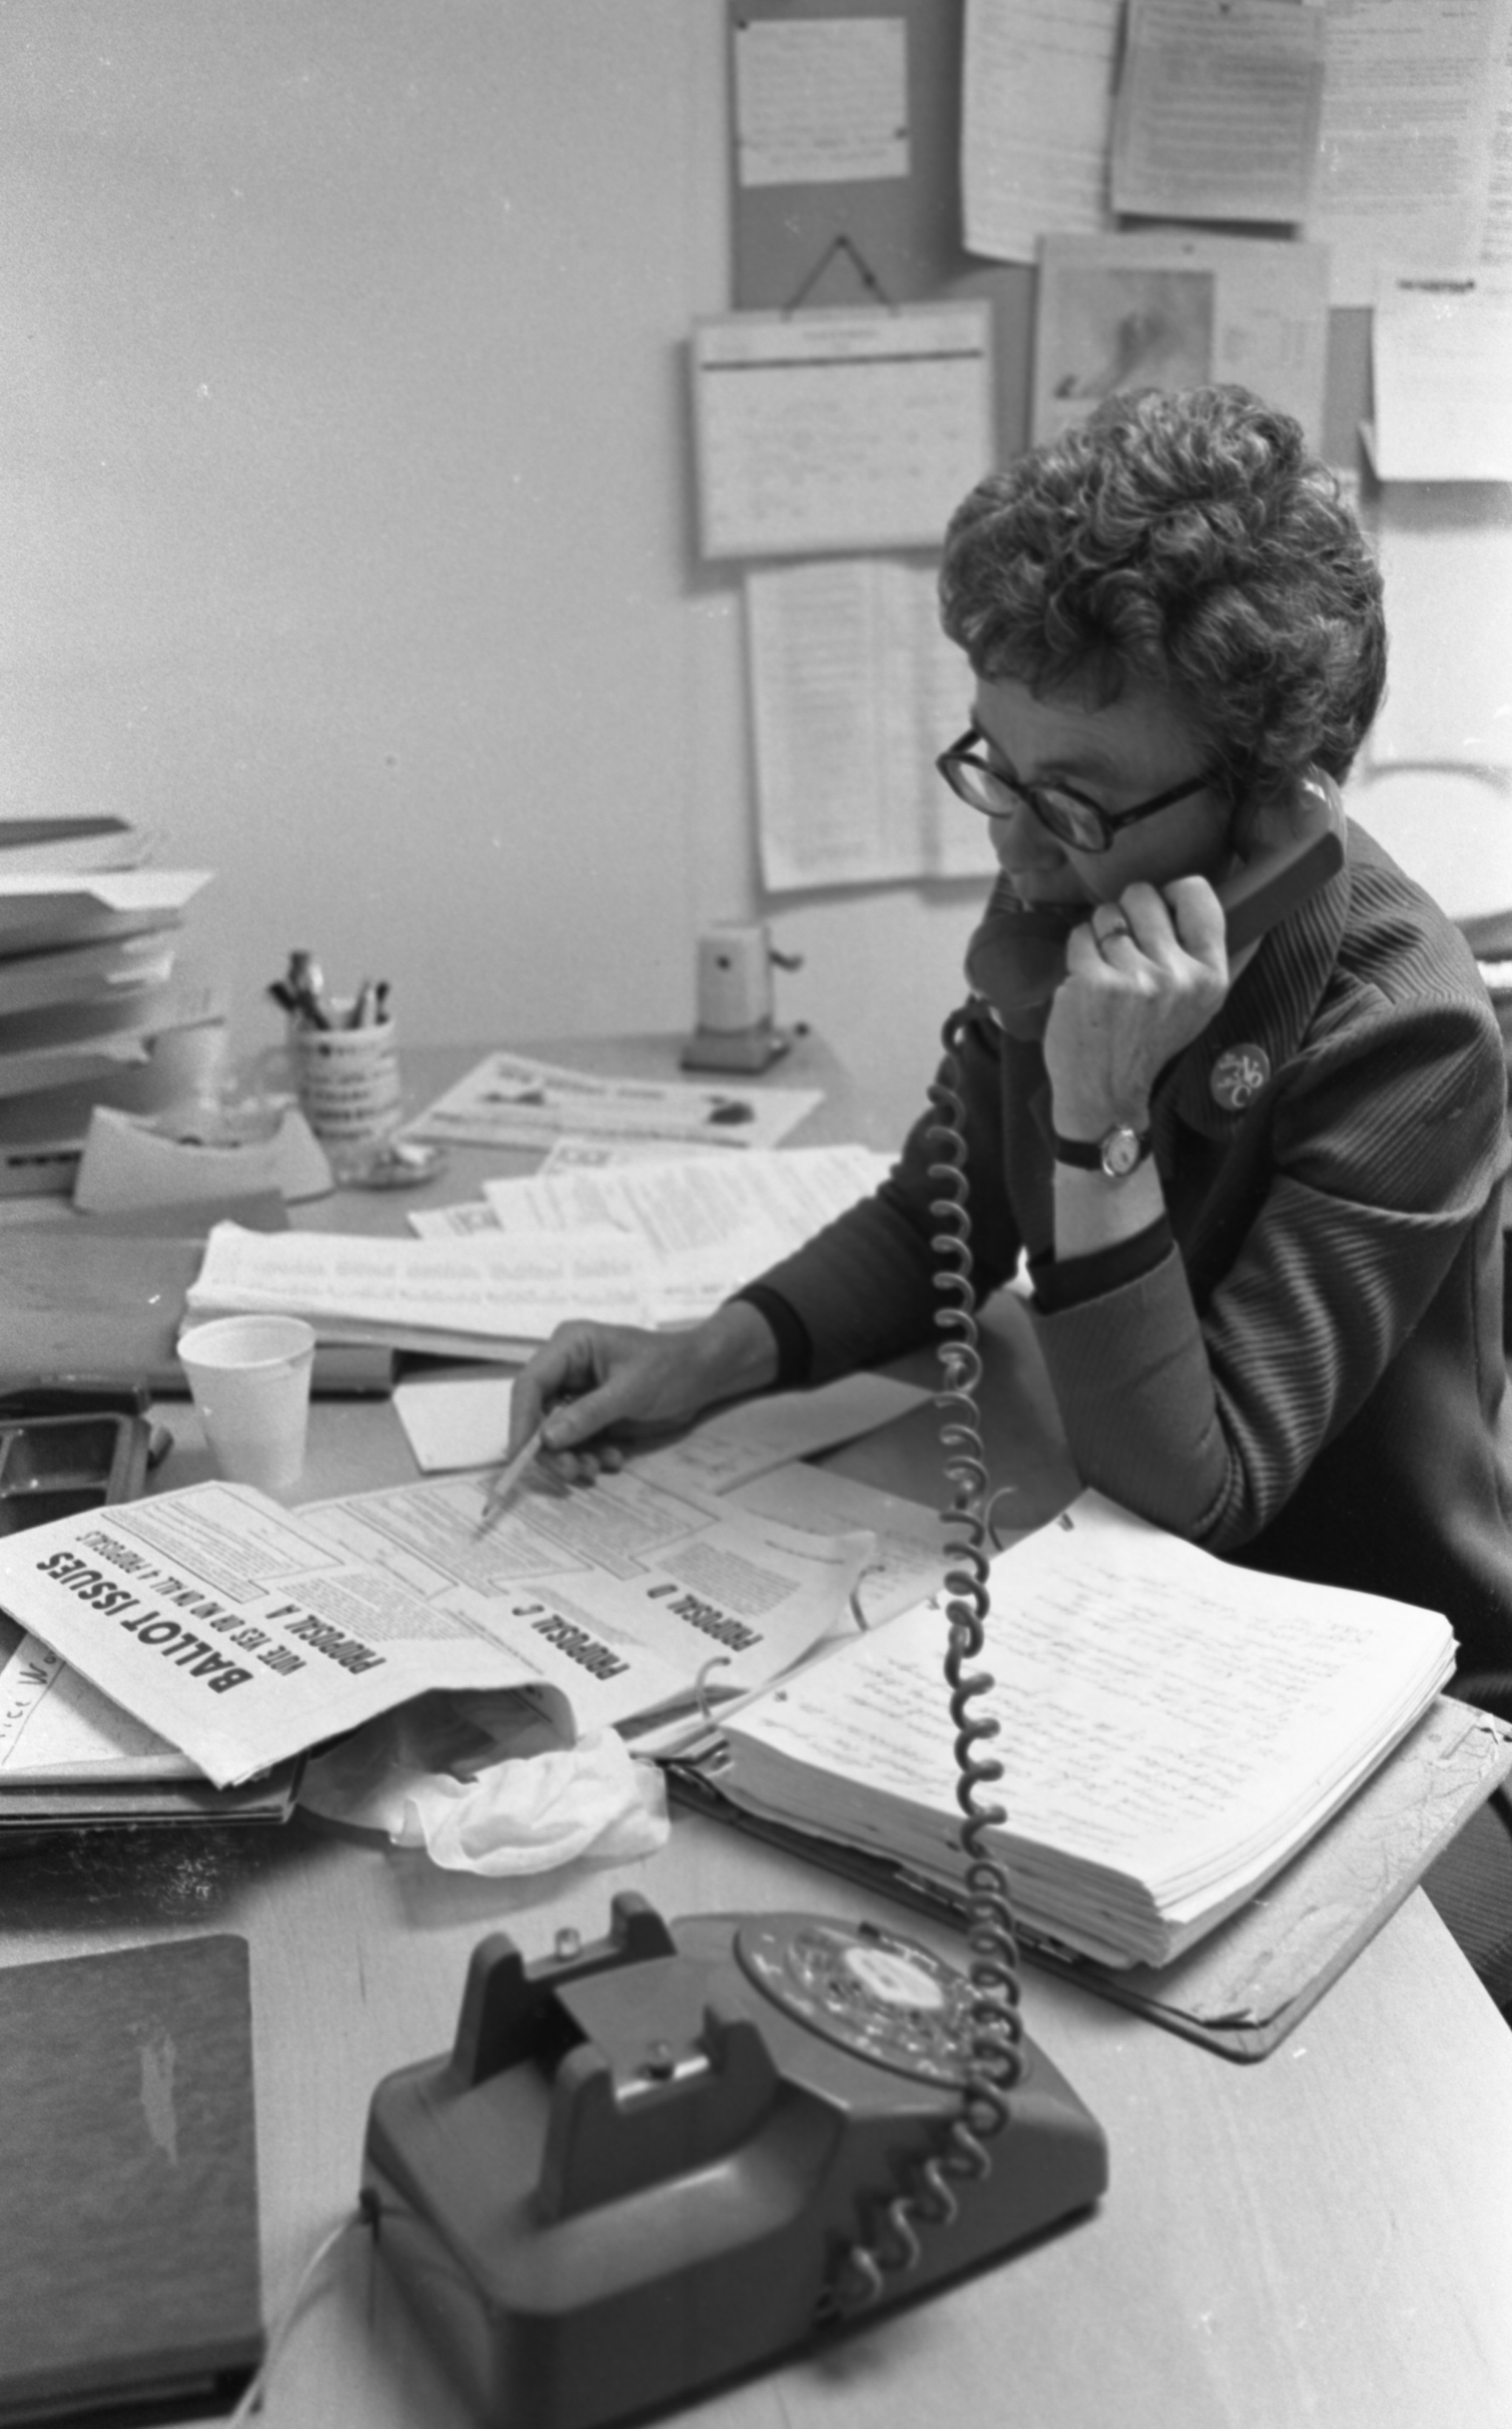 Helen West, League Of Women Voters President, Answers An Election Question, November 1976 image